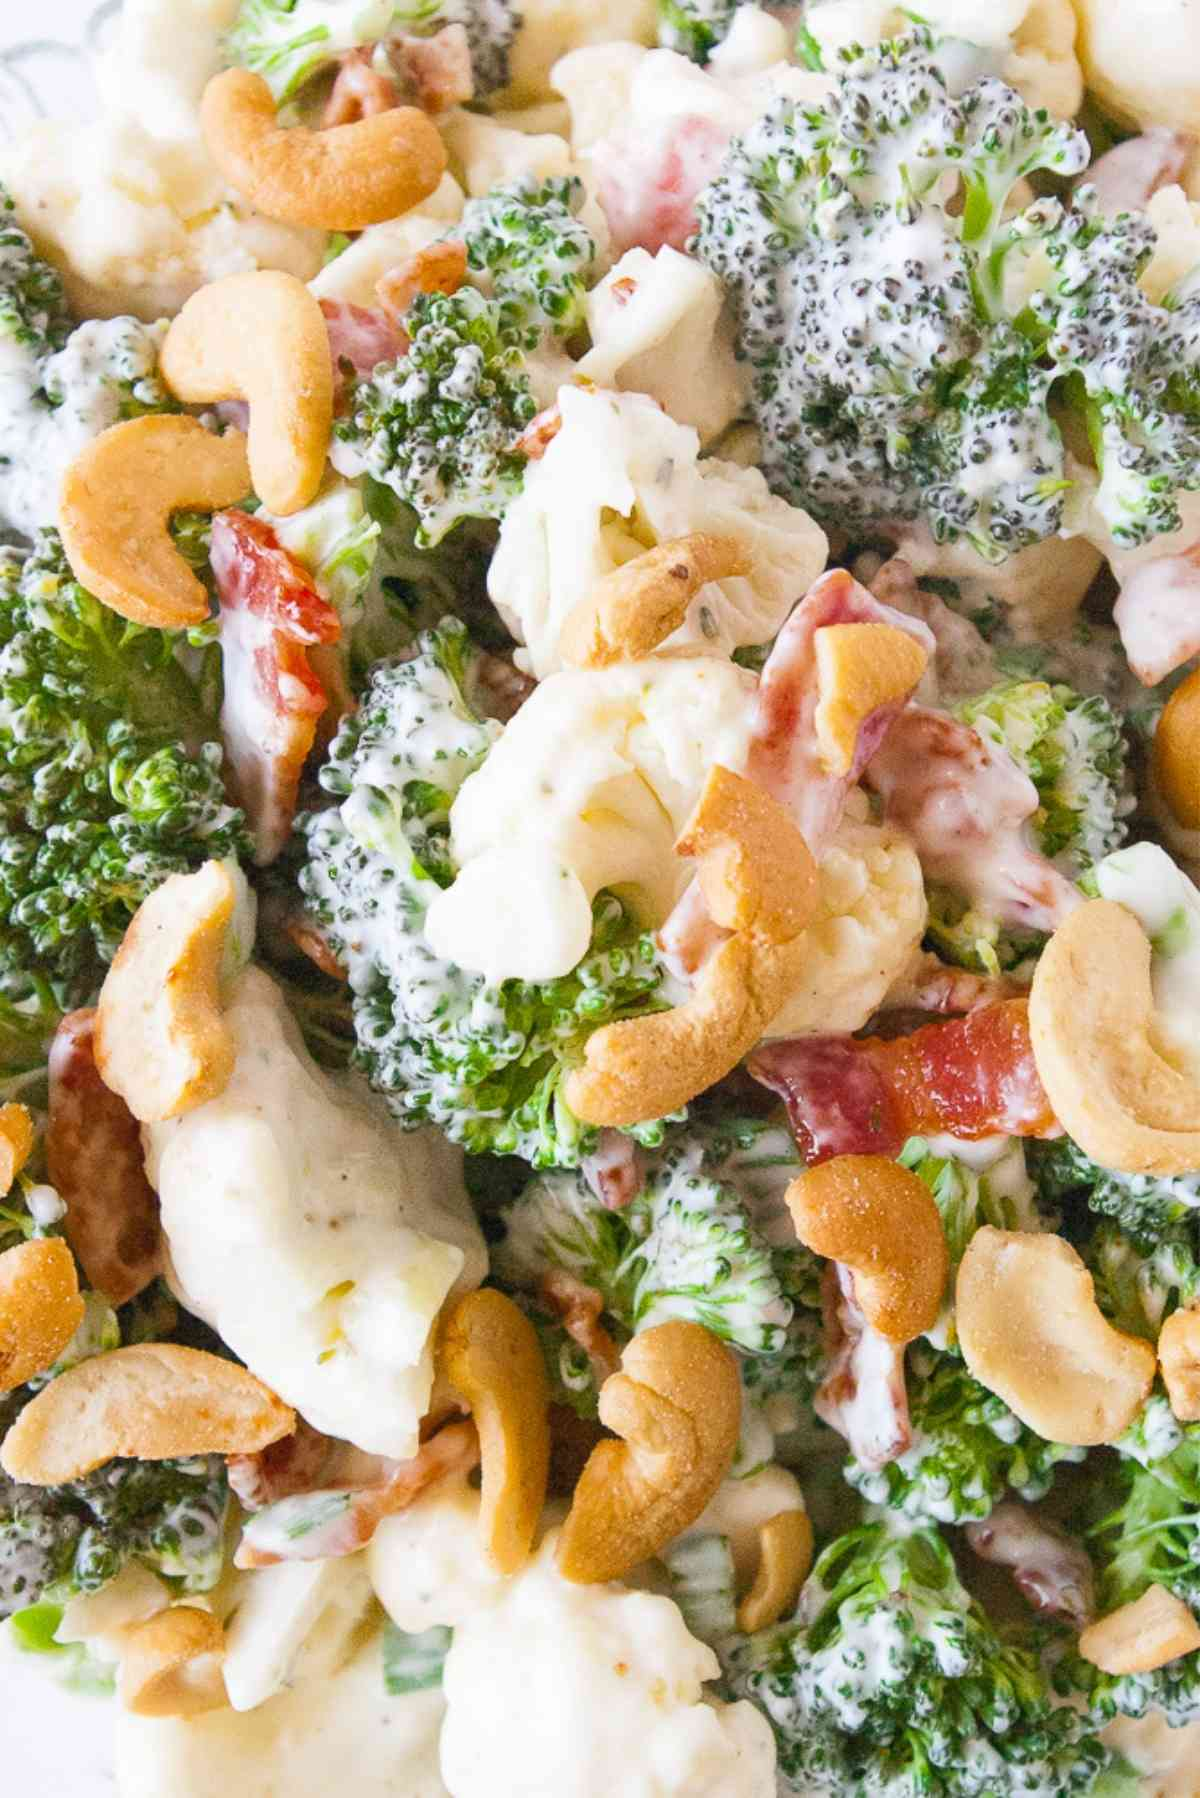 Close up of the broccoli, cauliflower, bacon and cashews in this salad.